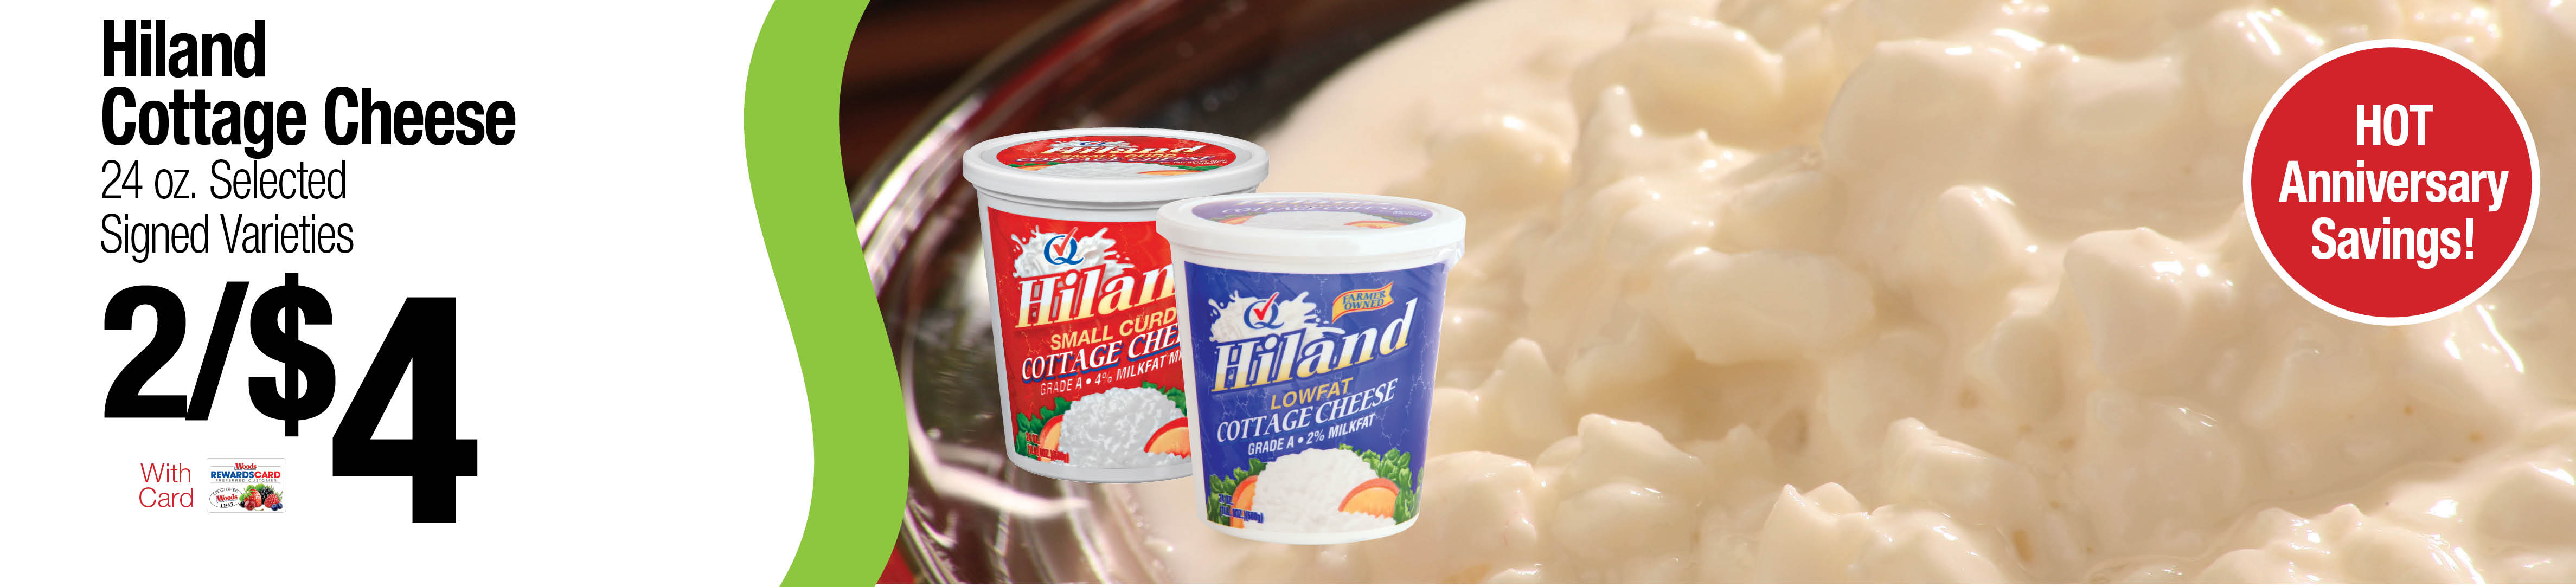 Hiland Cottage Cheese 2/$4